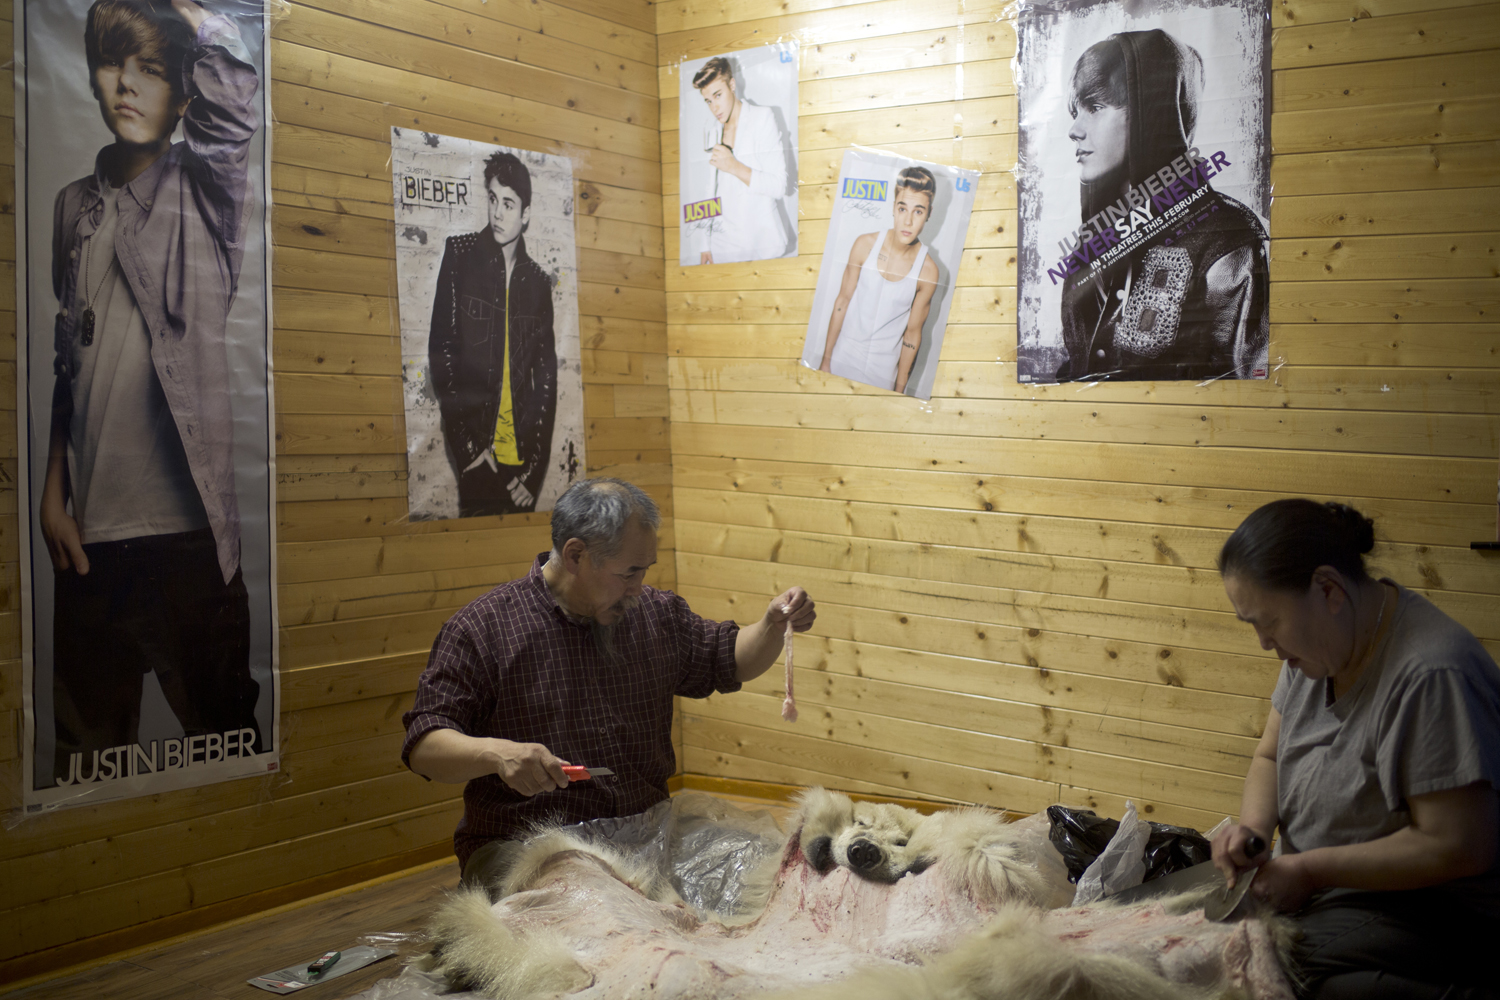 Arviat, Canada, Nov. 4, 2013. Inuit elders Mark and Angie Eetak cut off the fat from the pelt of a polar bear, which was shot days earlier. A single polar bear pelt can sell for over $10,000 – economic salvation for many impoverished Inuit families.